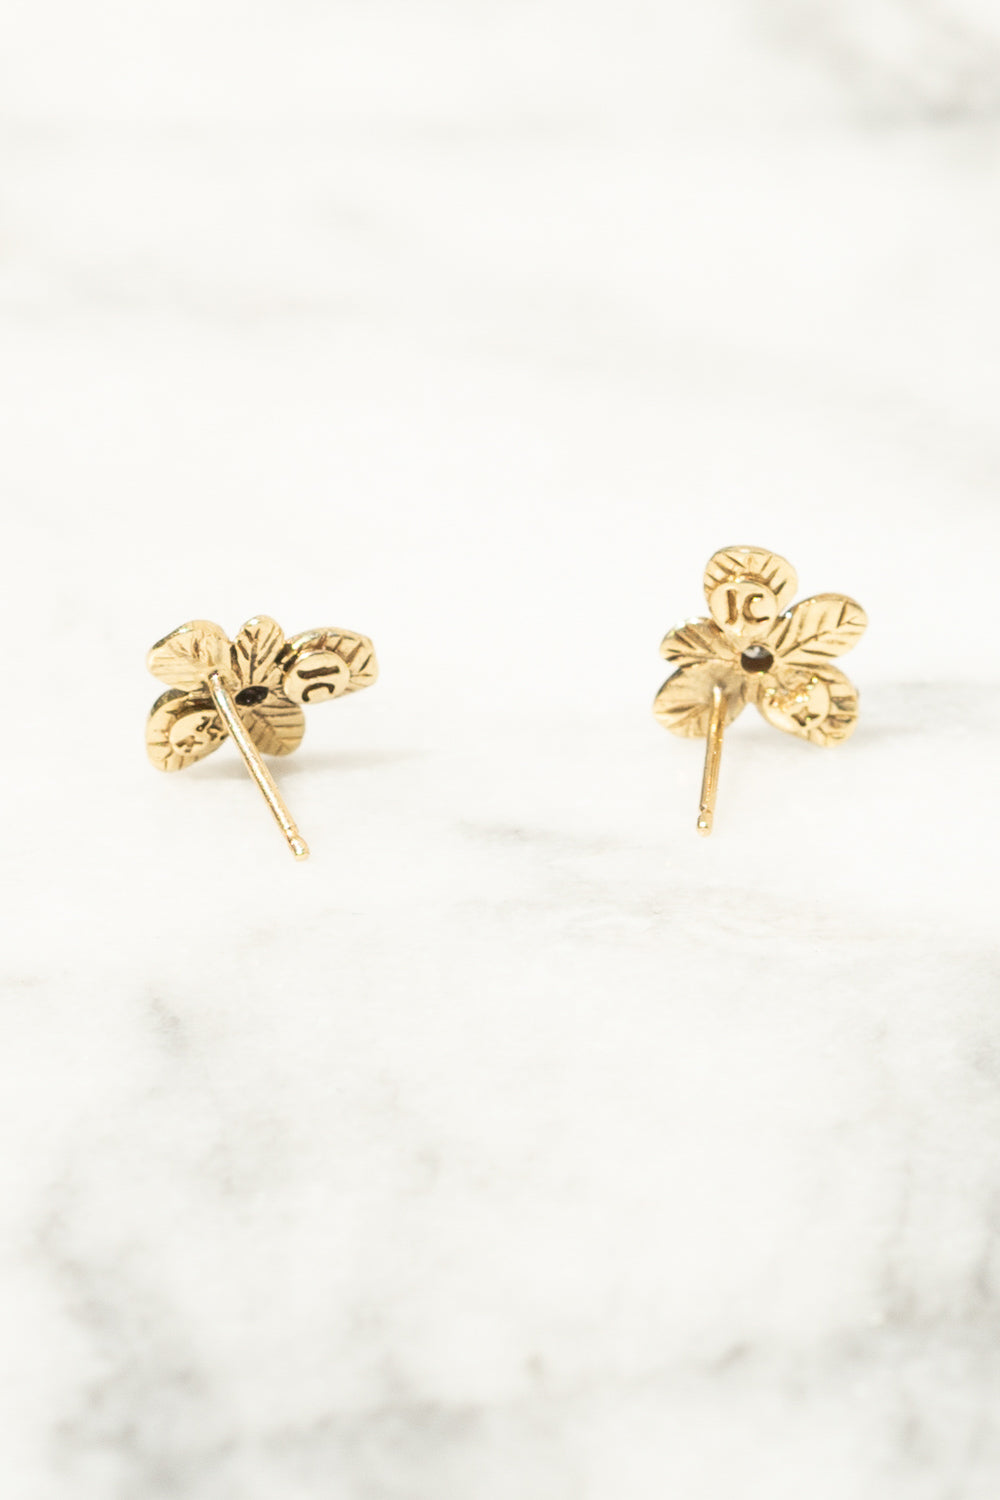 back view of gold flower stud earrings